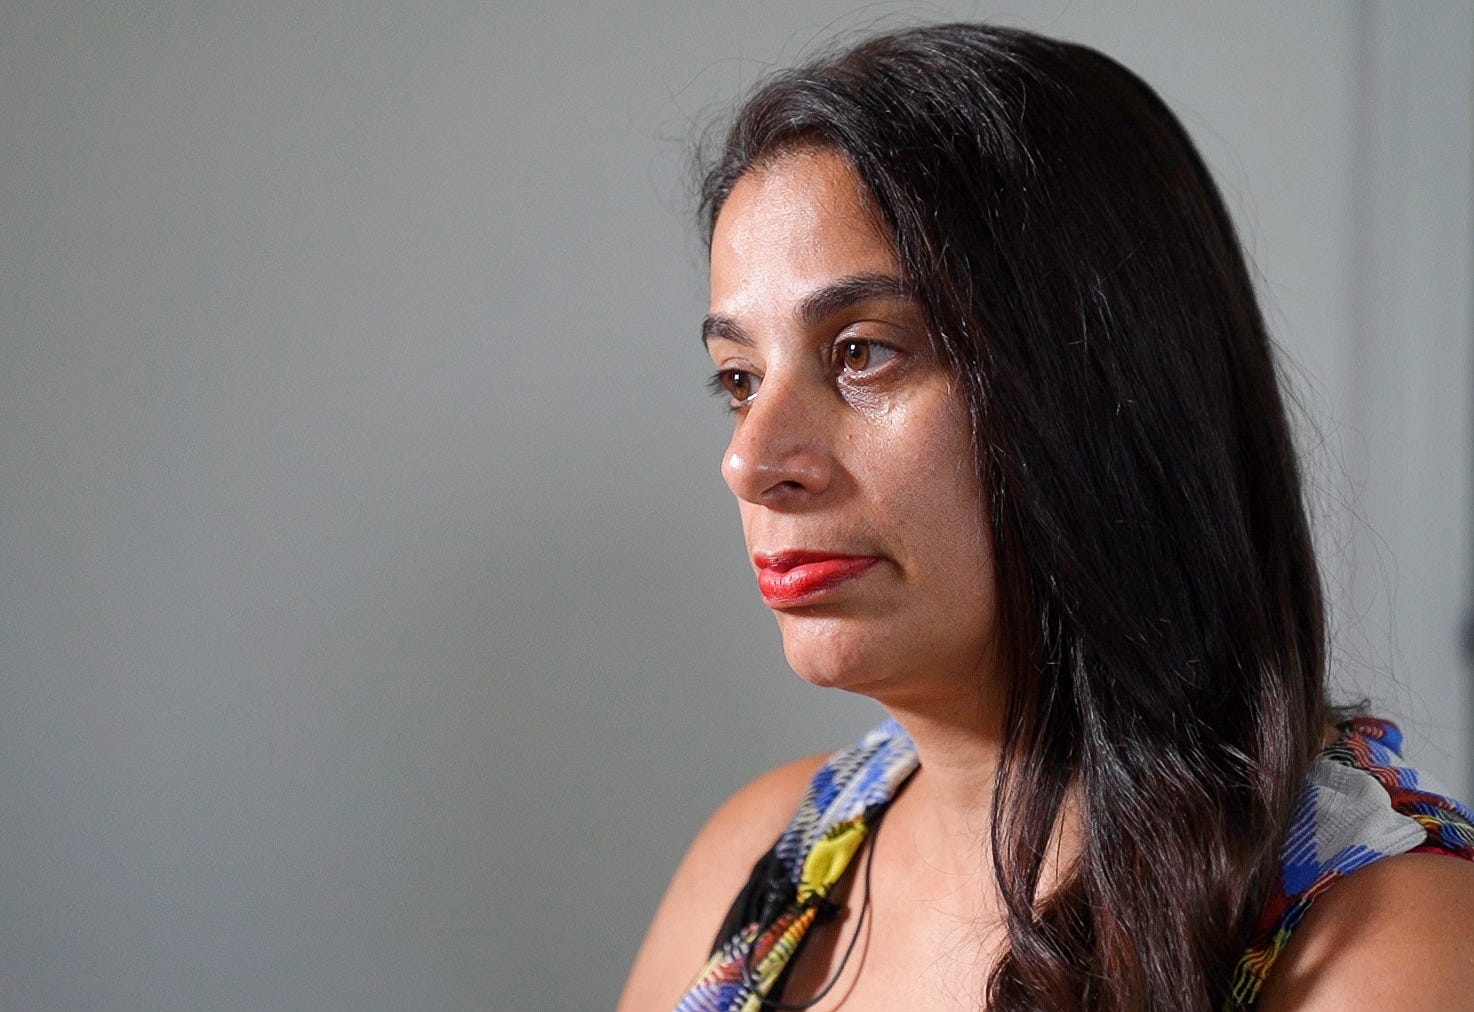 """Maysoon Zayid, an actor and comedian from Cliffside Park, New Jersey, has gainedfame on the daytime soap """"General Hospital"""" yet says she still gets death threats """"all the time."""""""